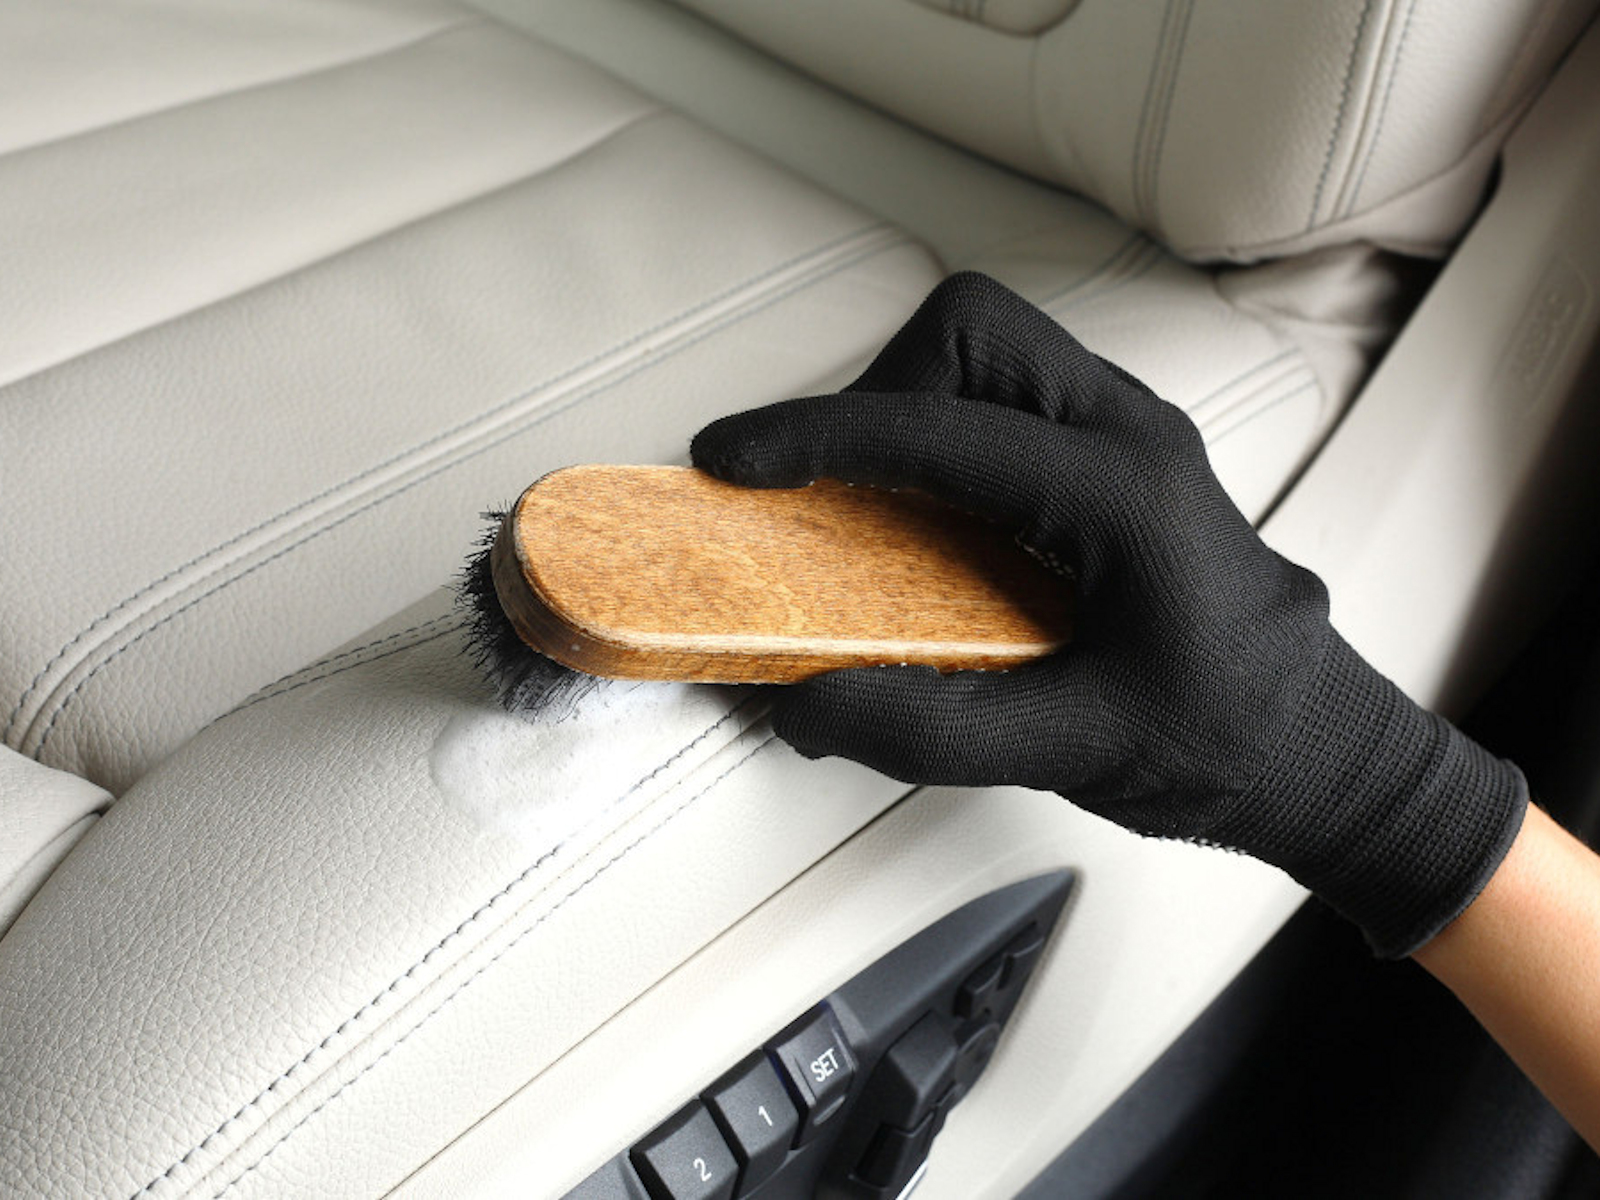 Vehicle Interior Cleaning - Leather cleaning